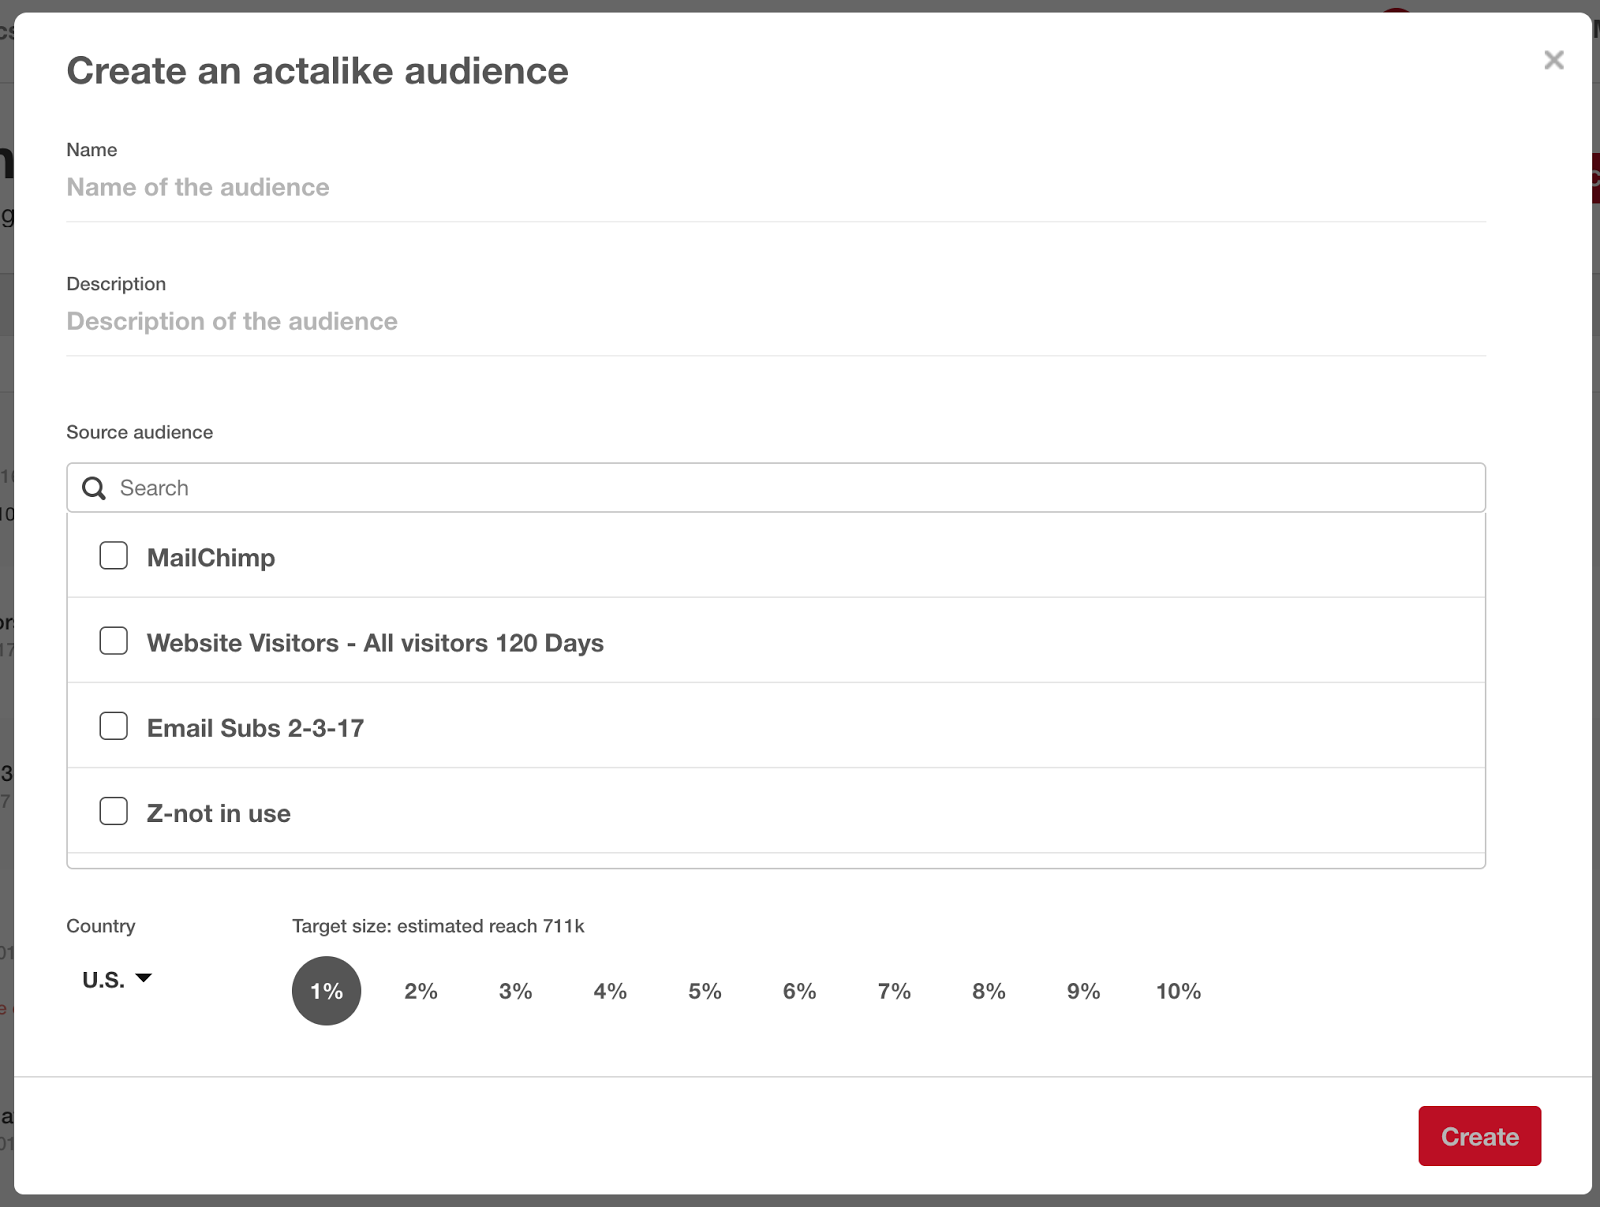 How to Set Up Your Pinterest Actalike Audience